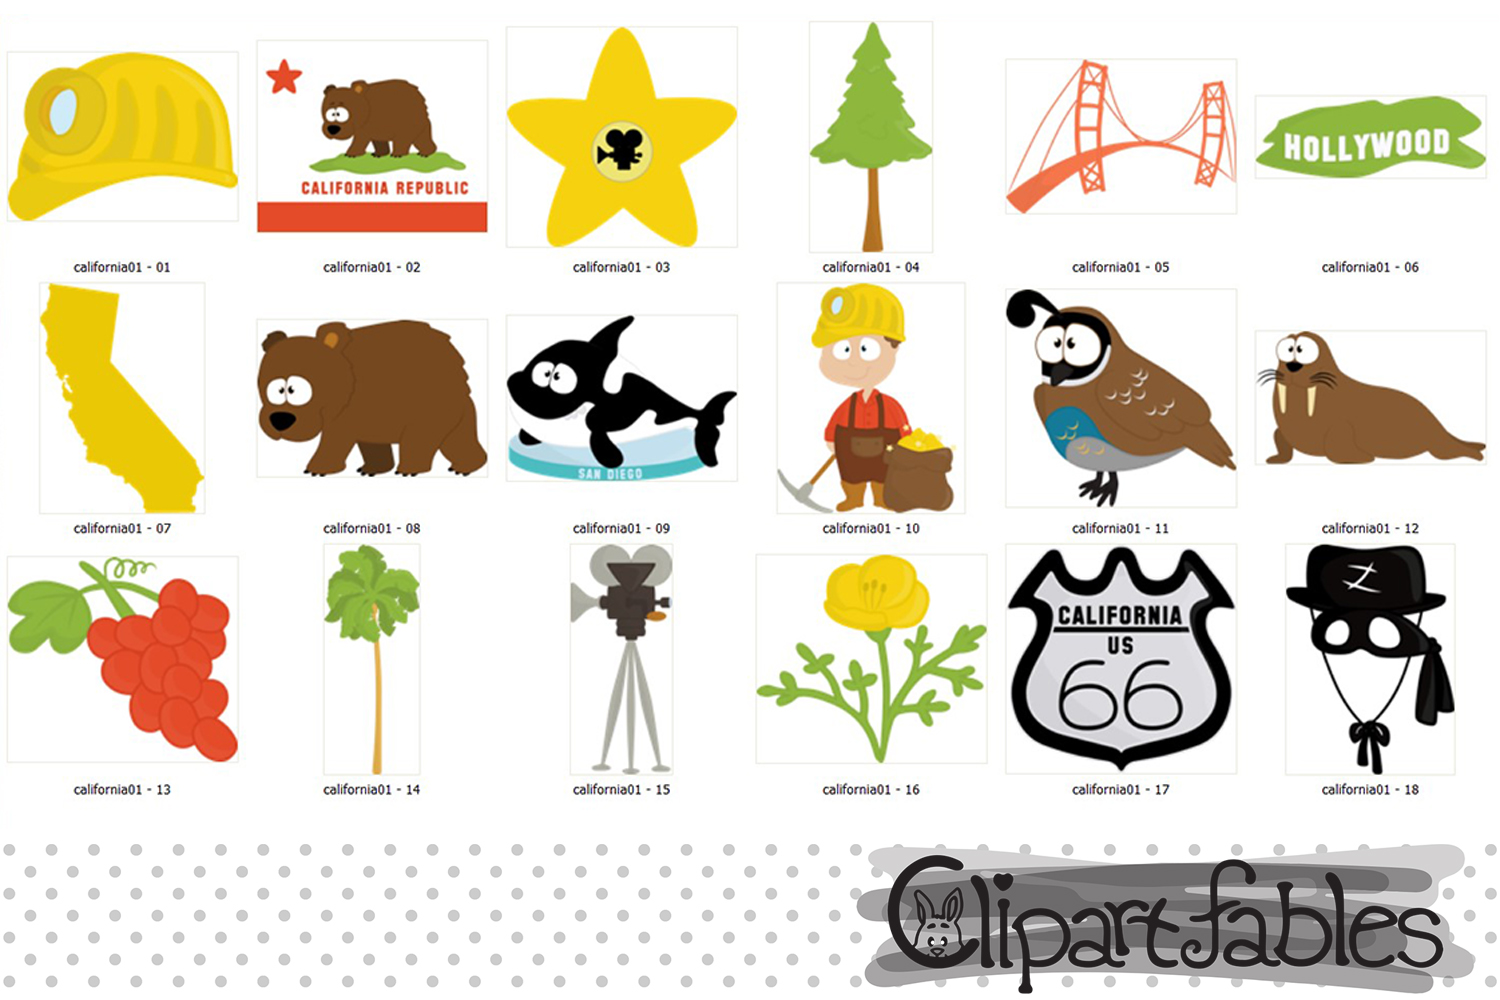 CALIFORNIA State clipart, Cute California bear - INSTANT art example image 2